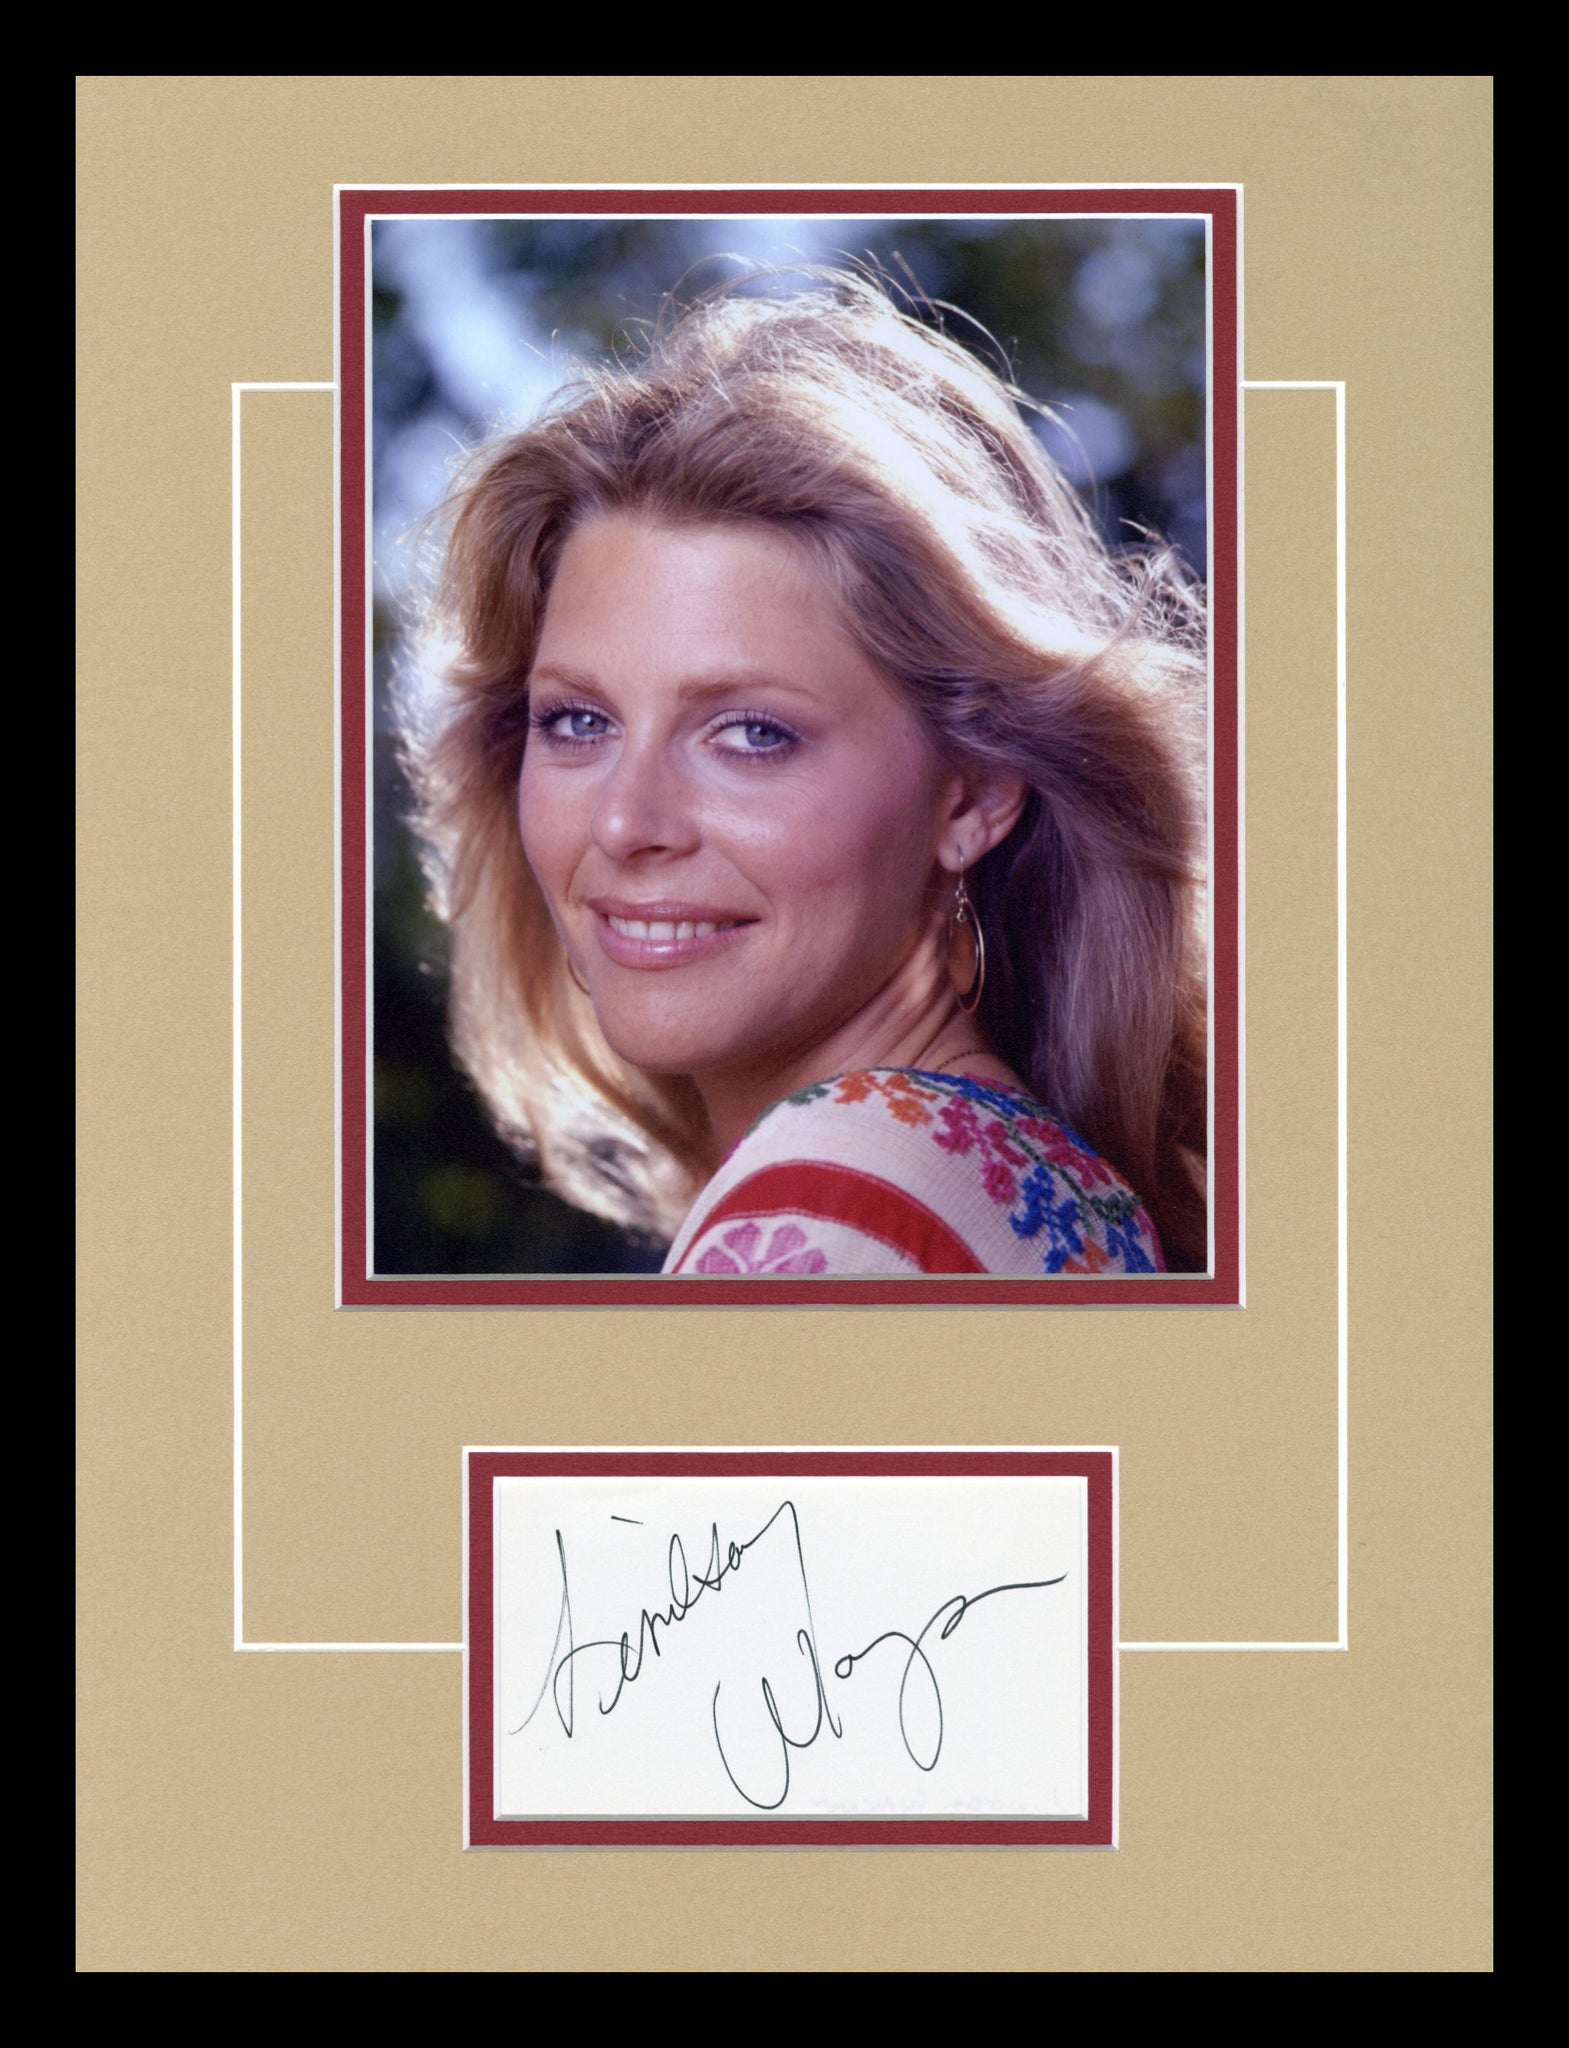 Lindsay Wagner Autographed Display